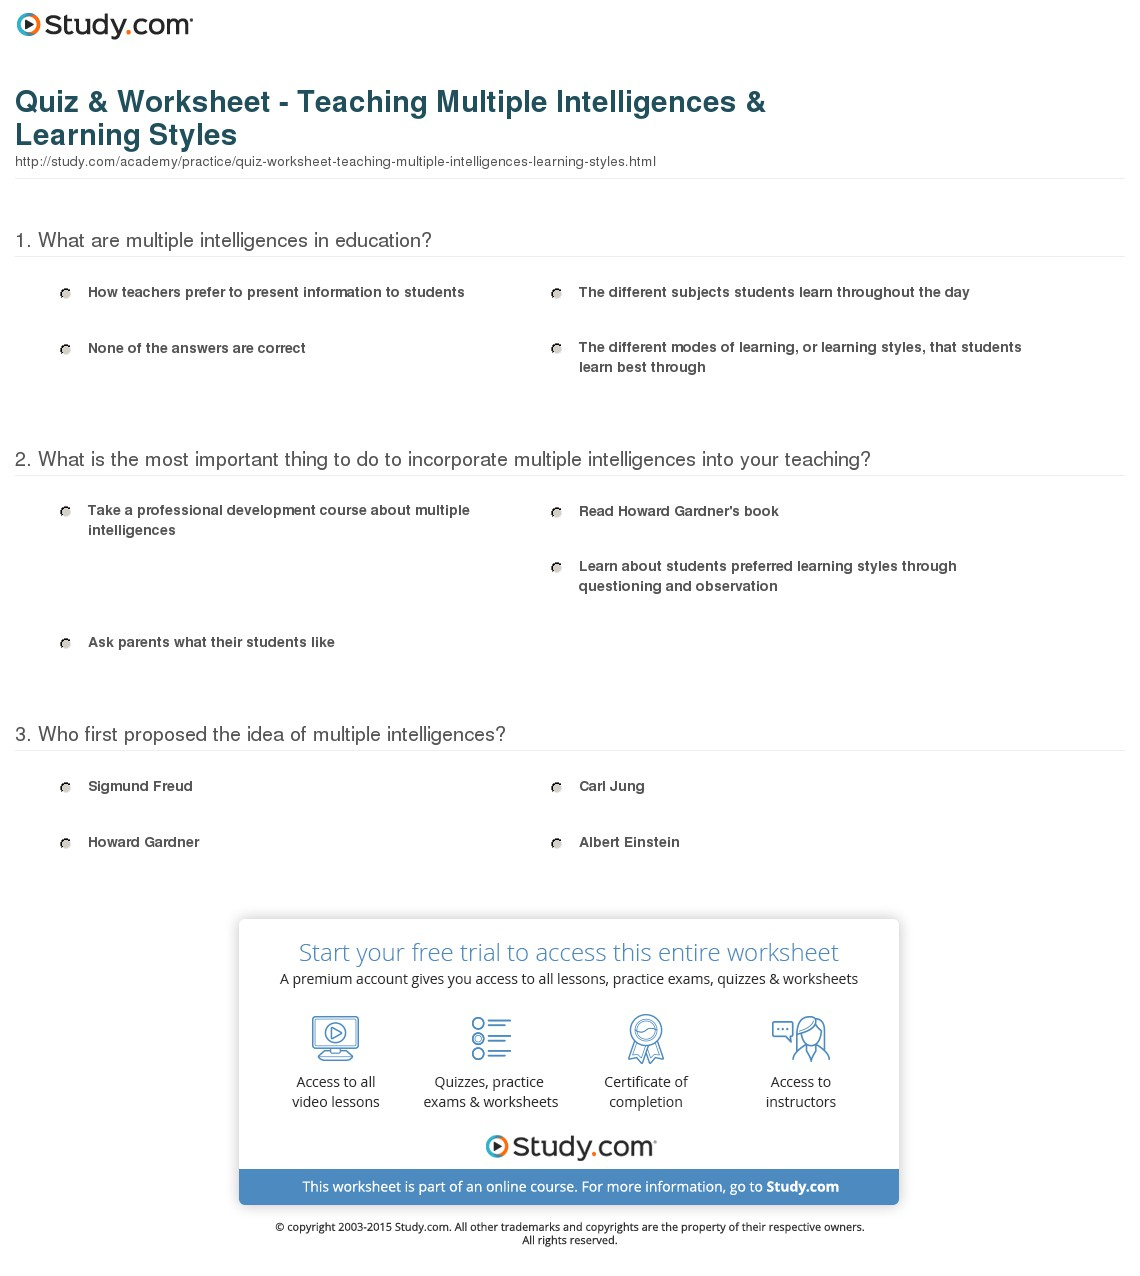 Quiz & Worksheet - Teaching Multiple Intelligences & Learning Styles - Free Printable Learning Styles Questionnaire